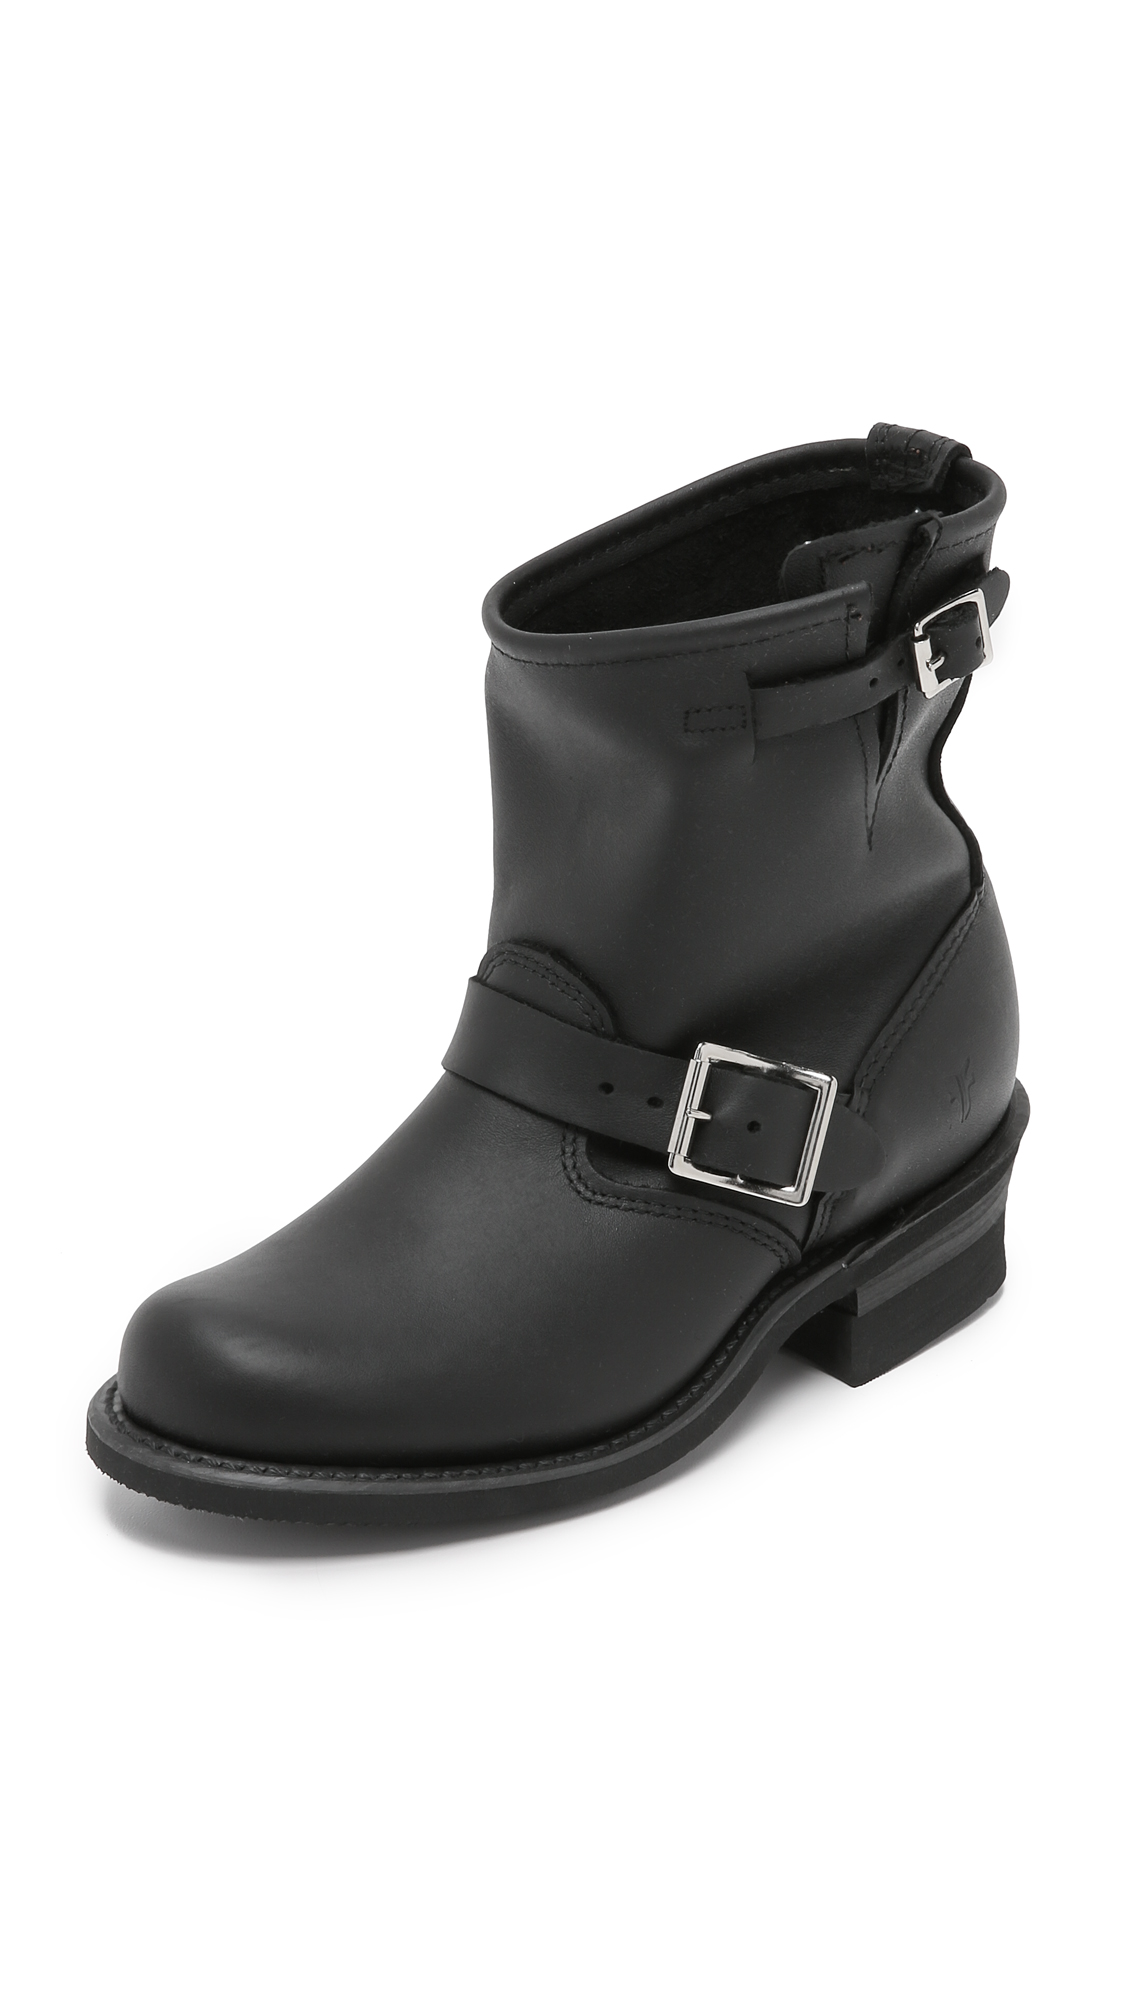 Frye Engineer 8R Boots - Black